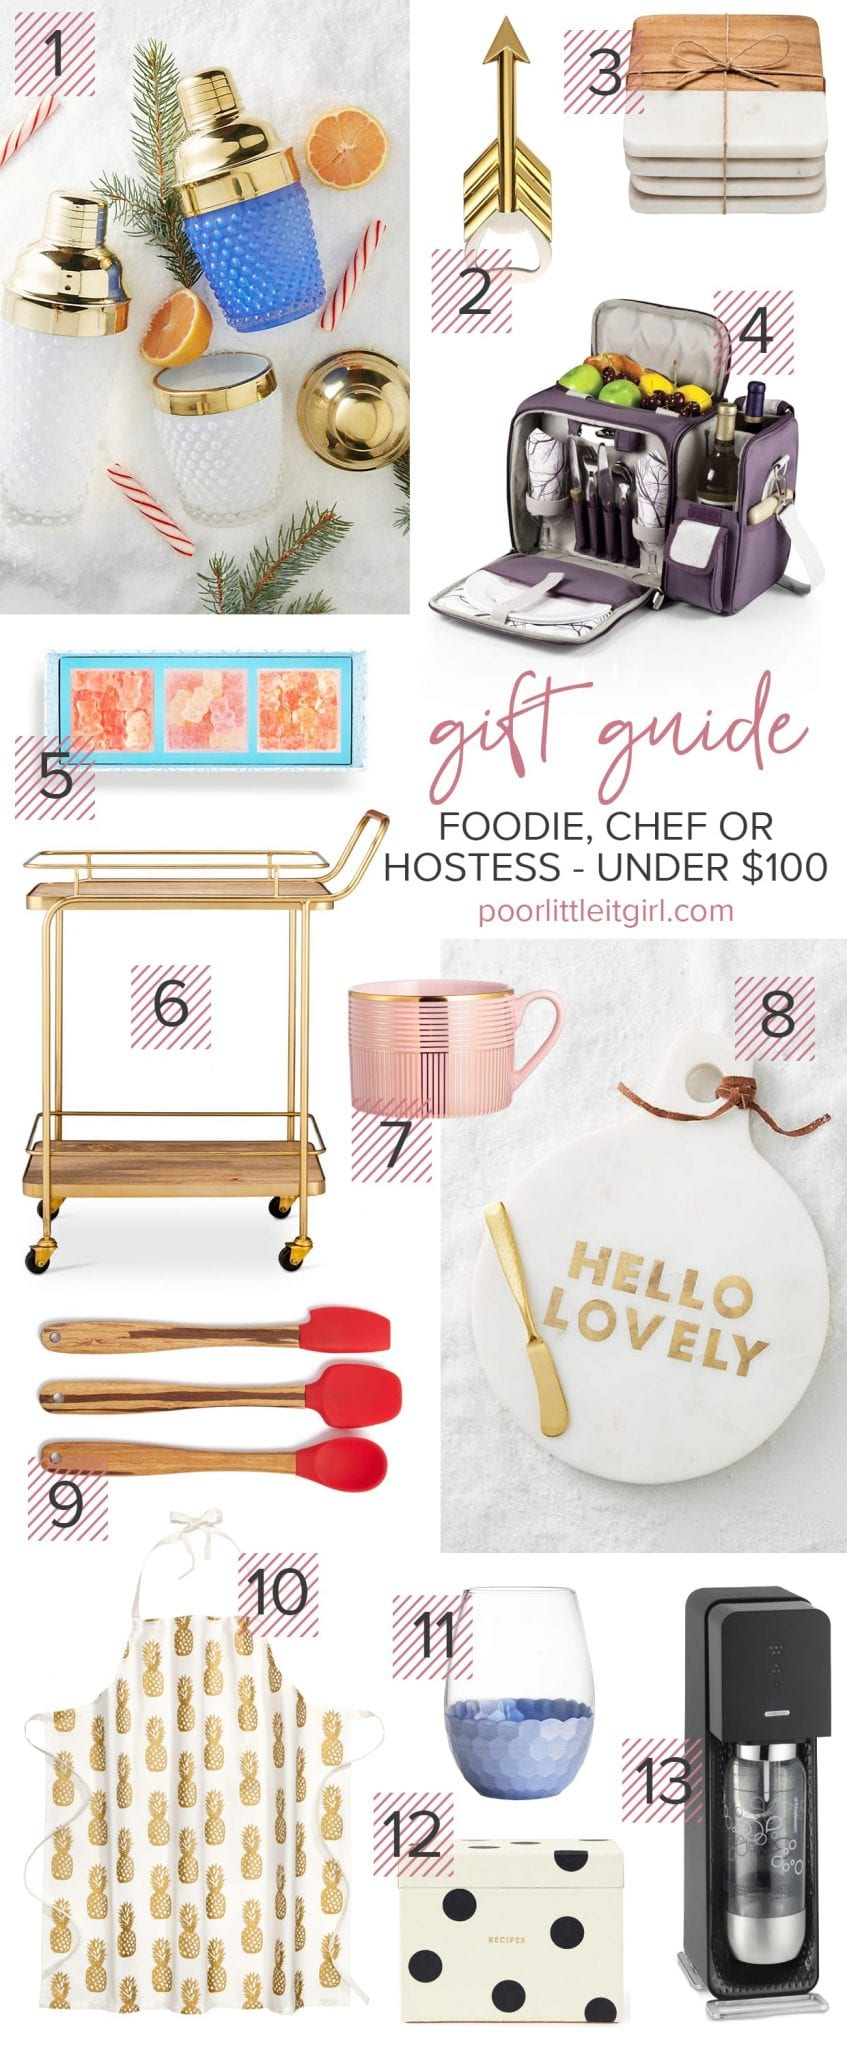 Foodie, Chef or Hostess Gift Guide Under $100 - Poor Little It Girl